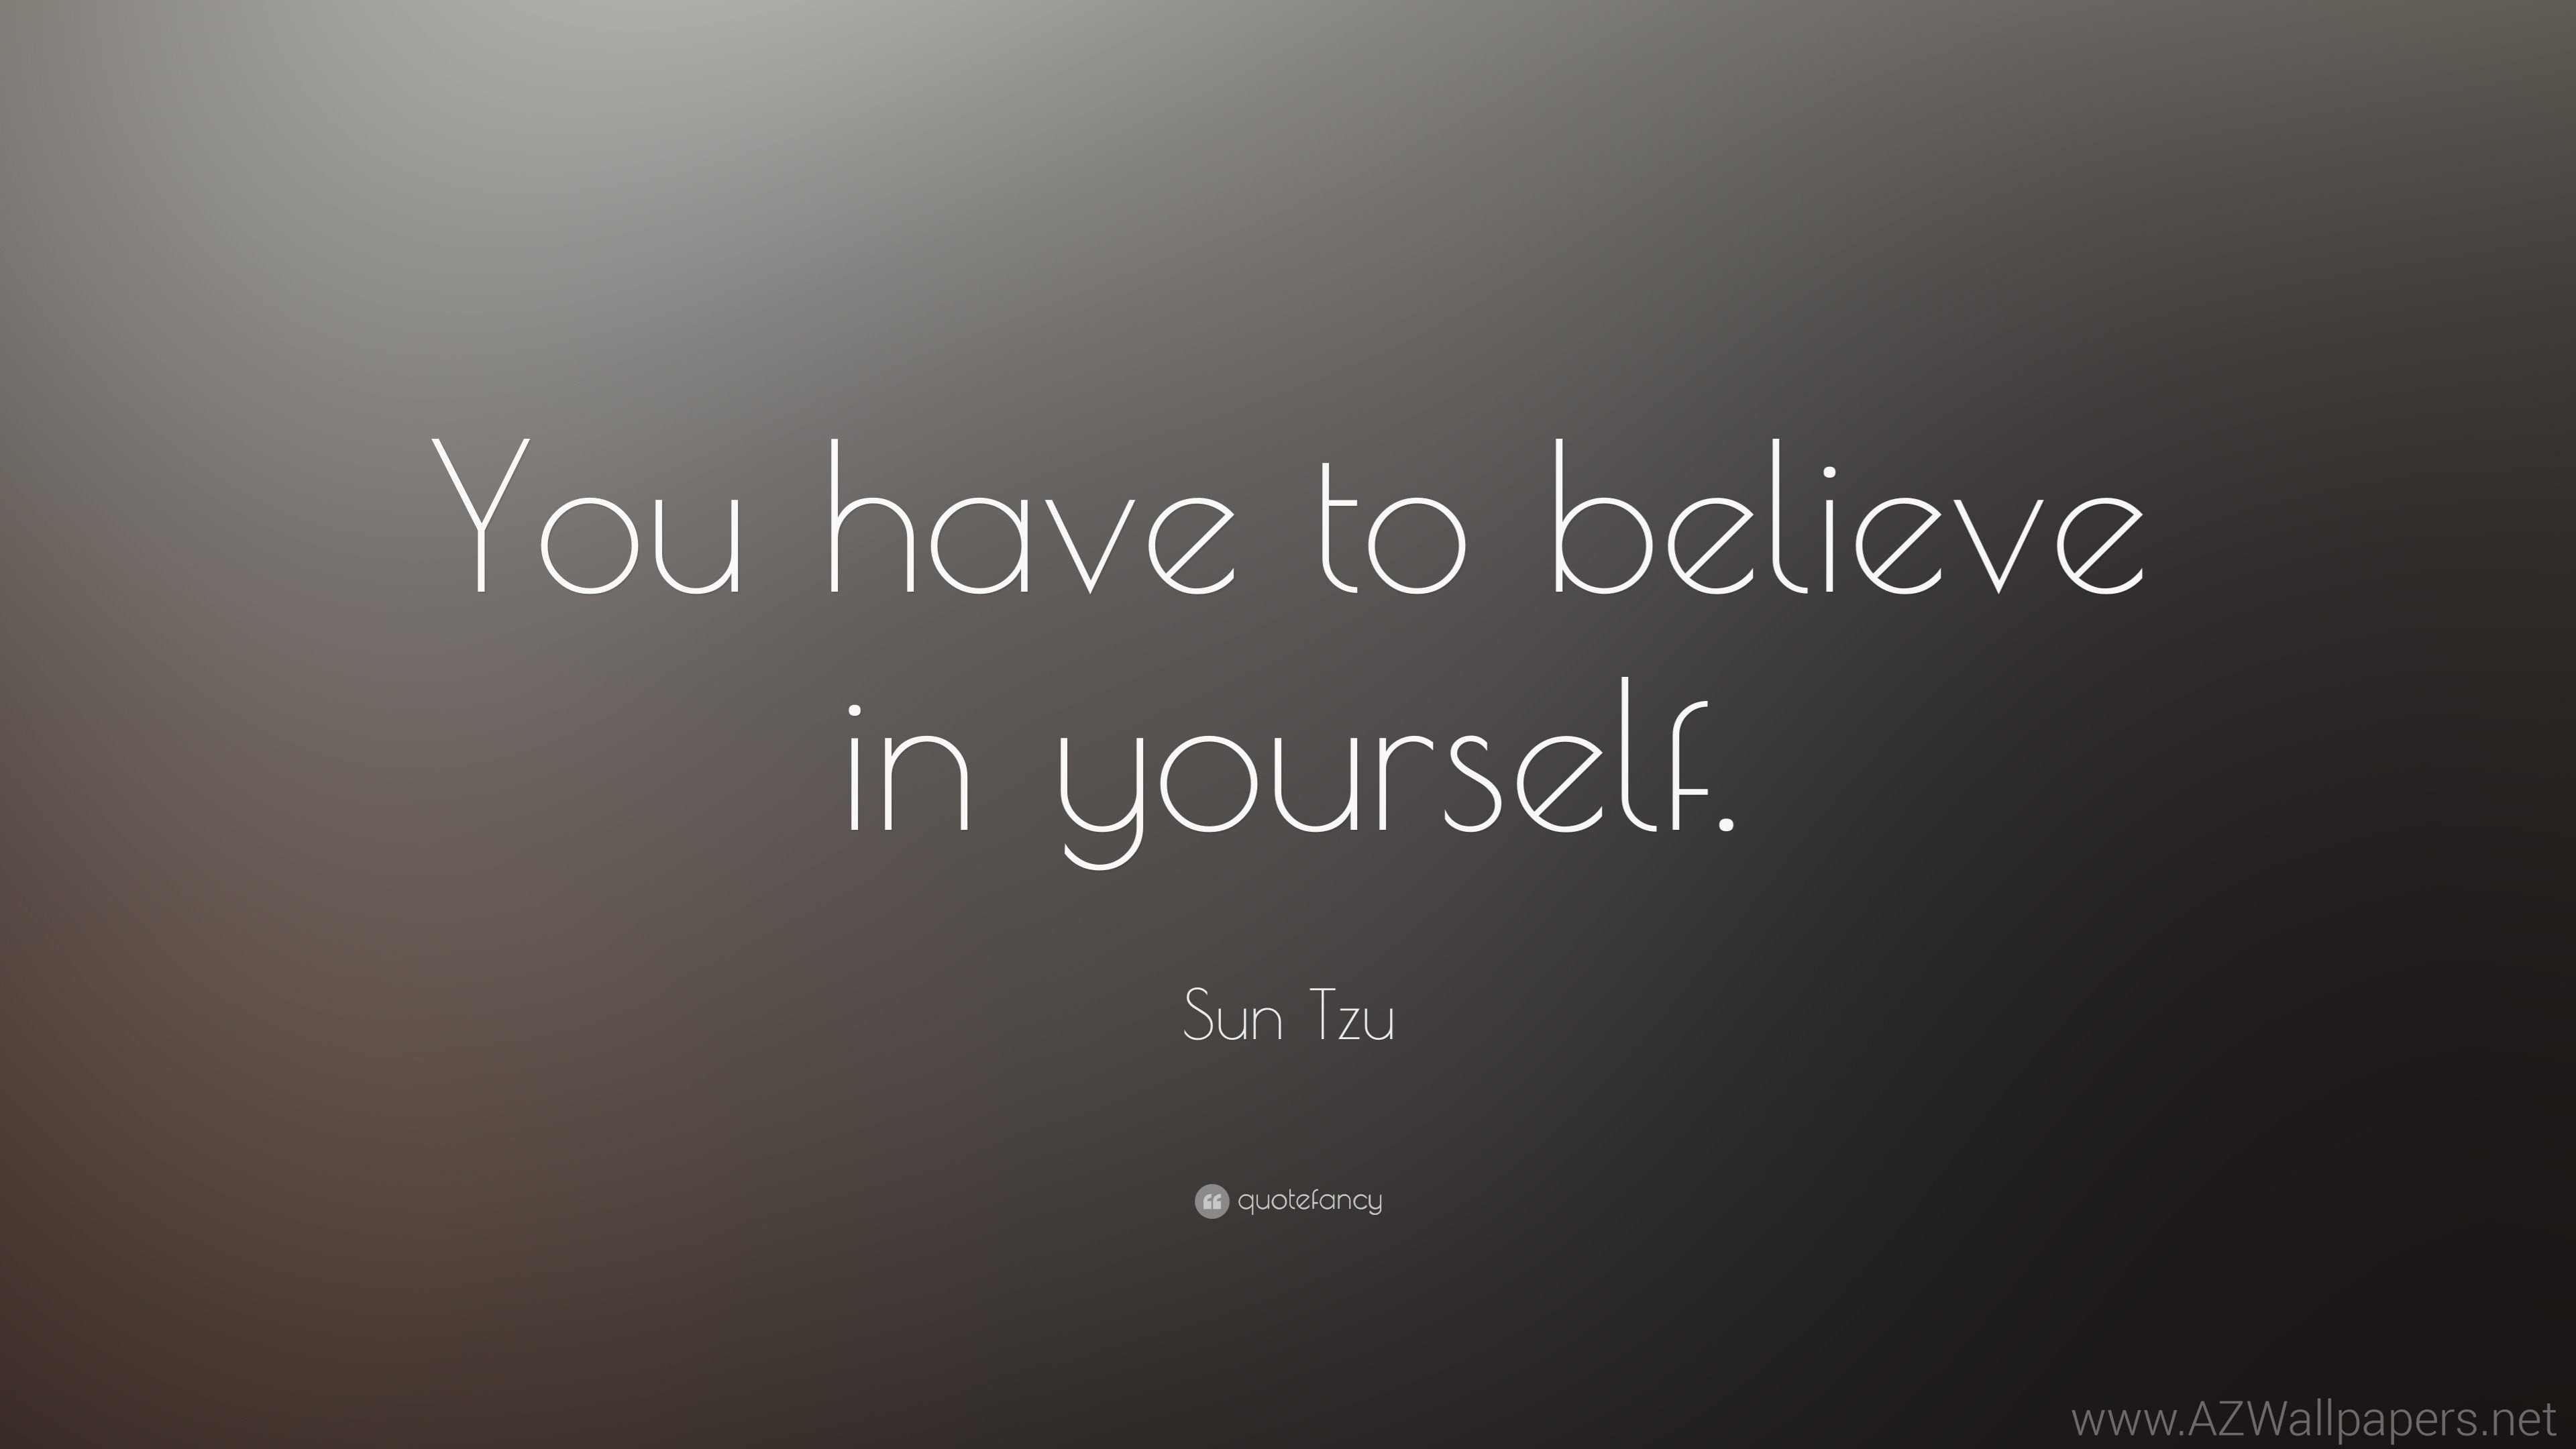 … sun tzu quote you have to believe in yourself 13 wallpapers …